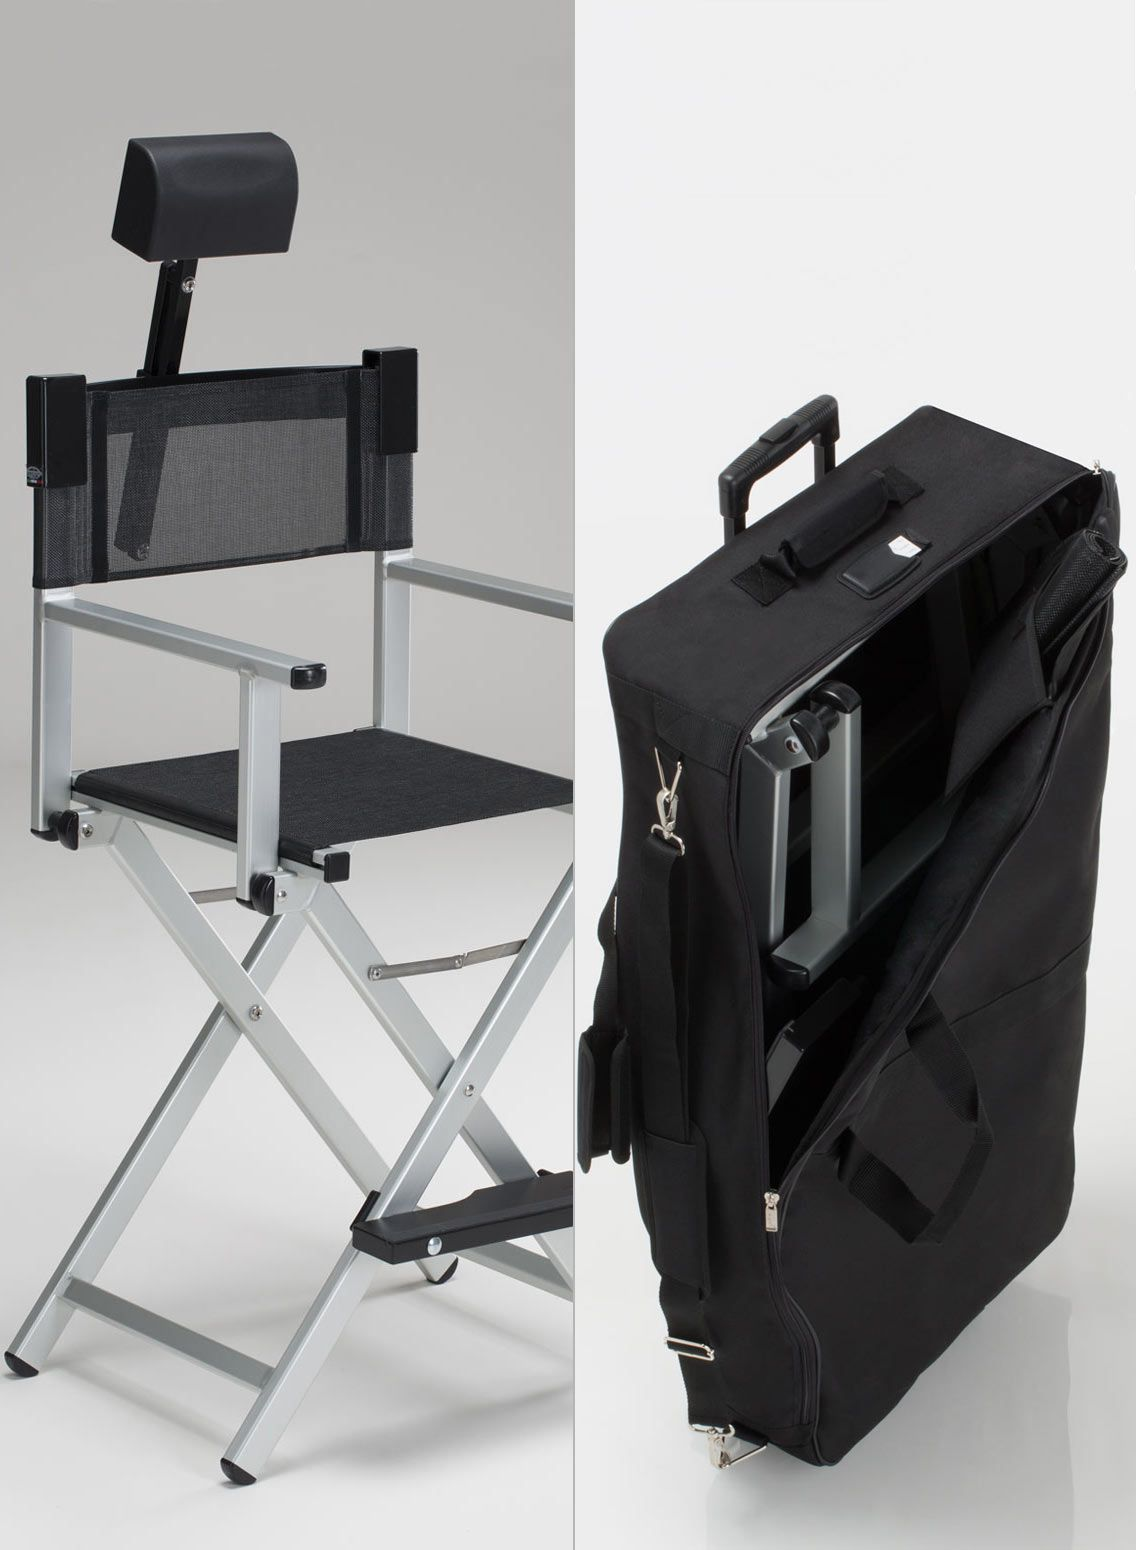 makeup chairs for professional artists computer chair with headrest aluminum set and trolley bag alu make up complete adjustable suitable waterproof travel